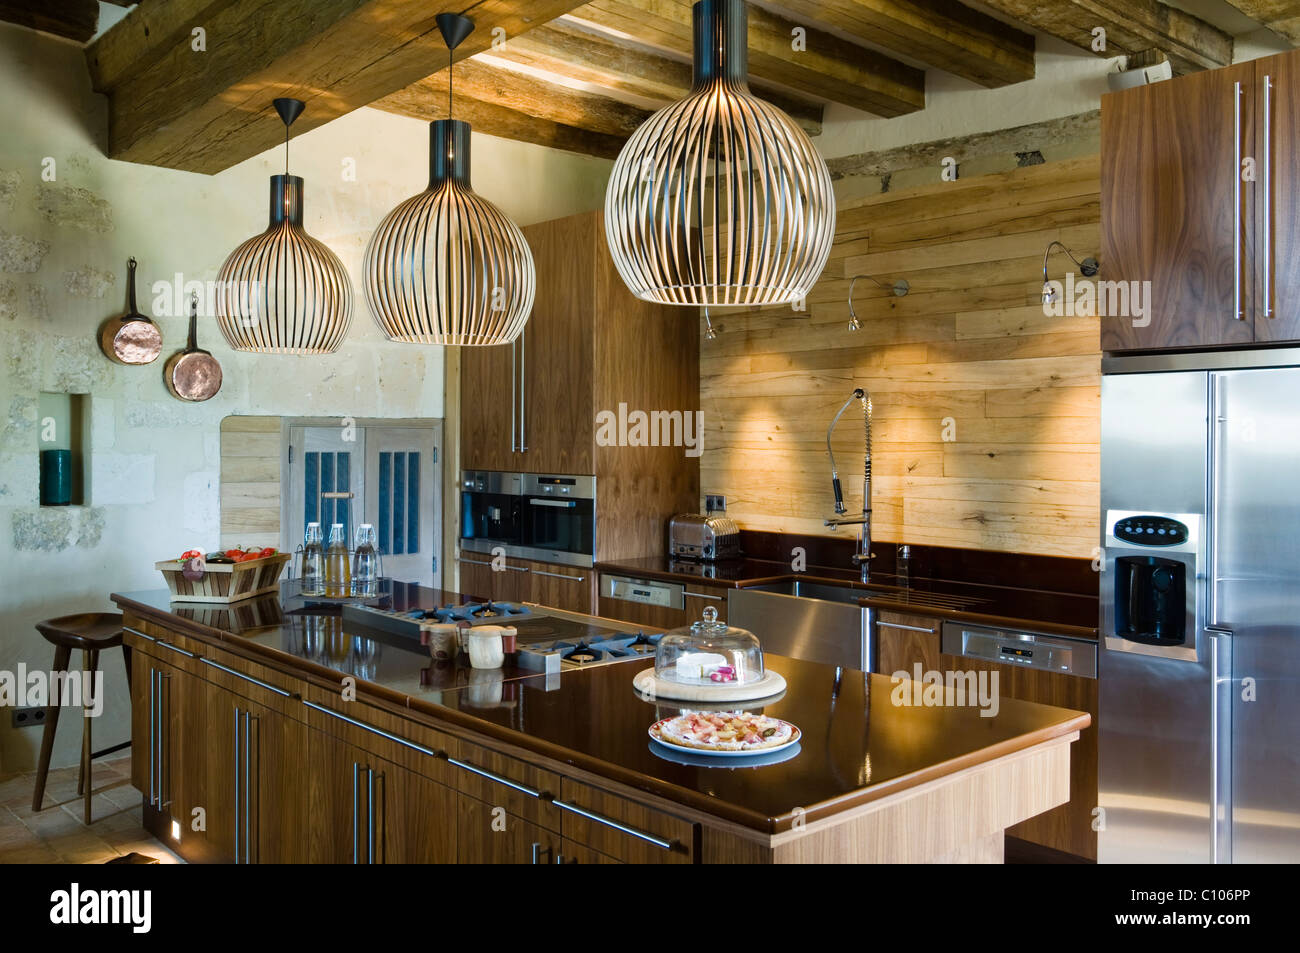 Secto lamps in kitchen with beamed ceiling and asselin birch worktop secto lamps in kitchen with beamed ceiling and asselin birch worktop aloadofball Images